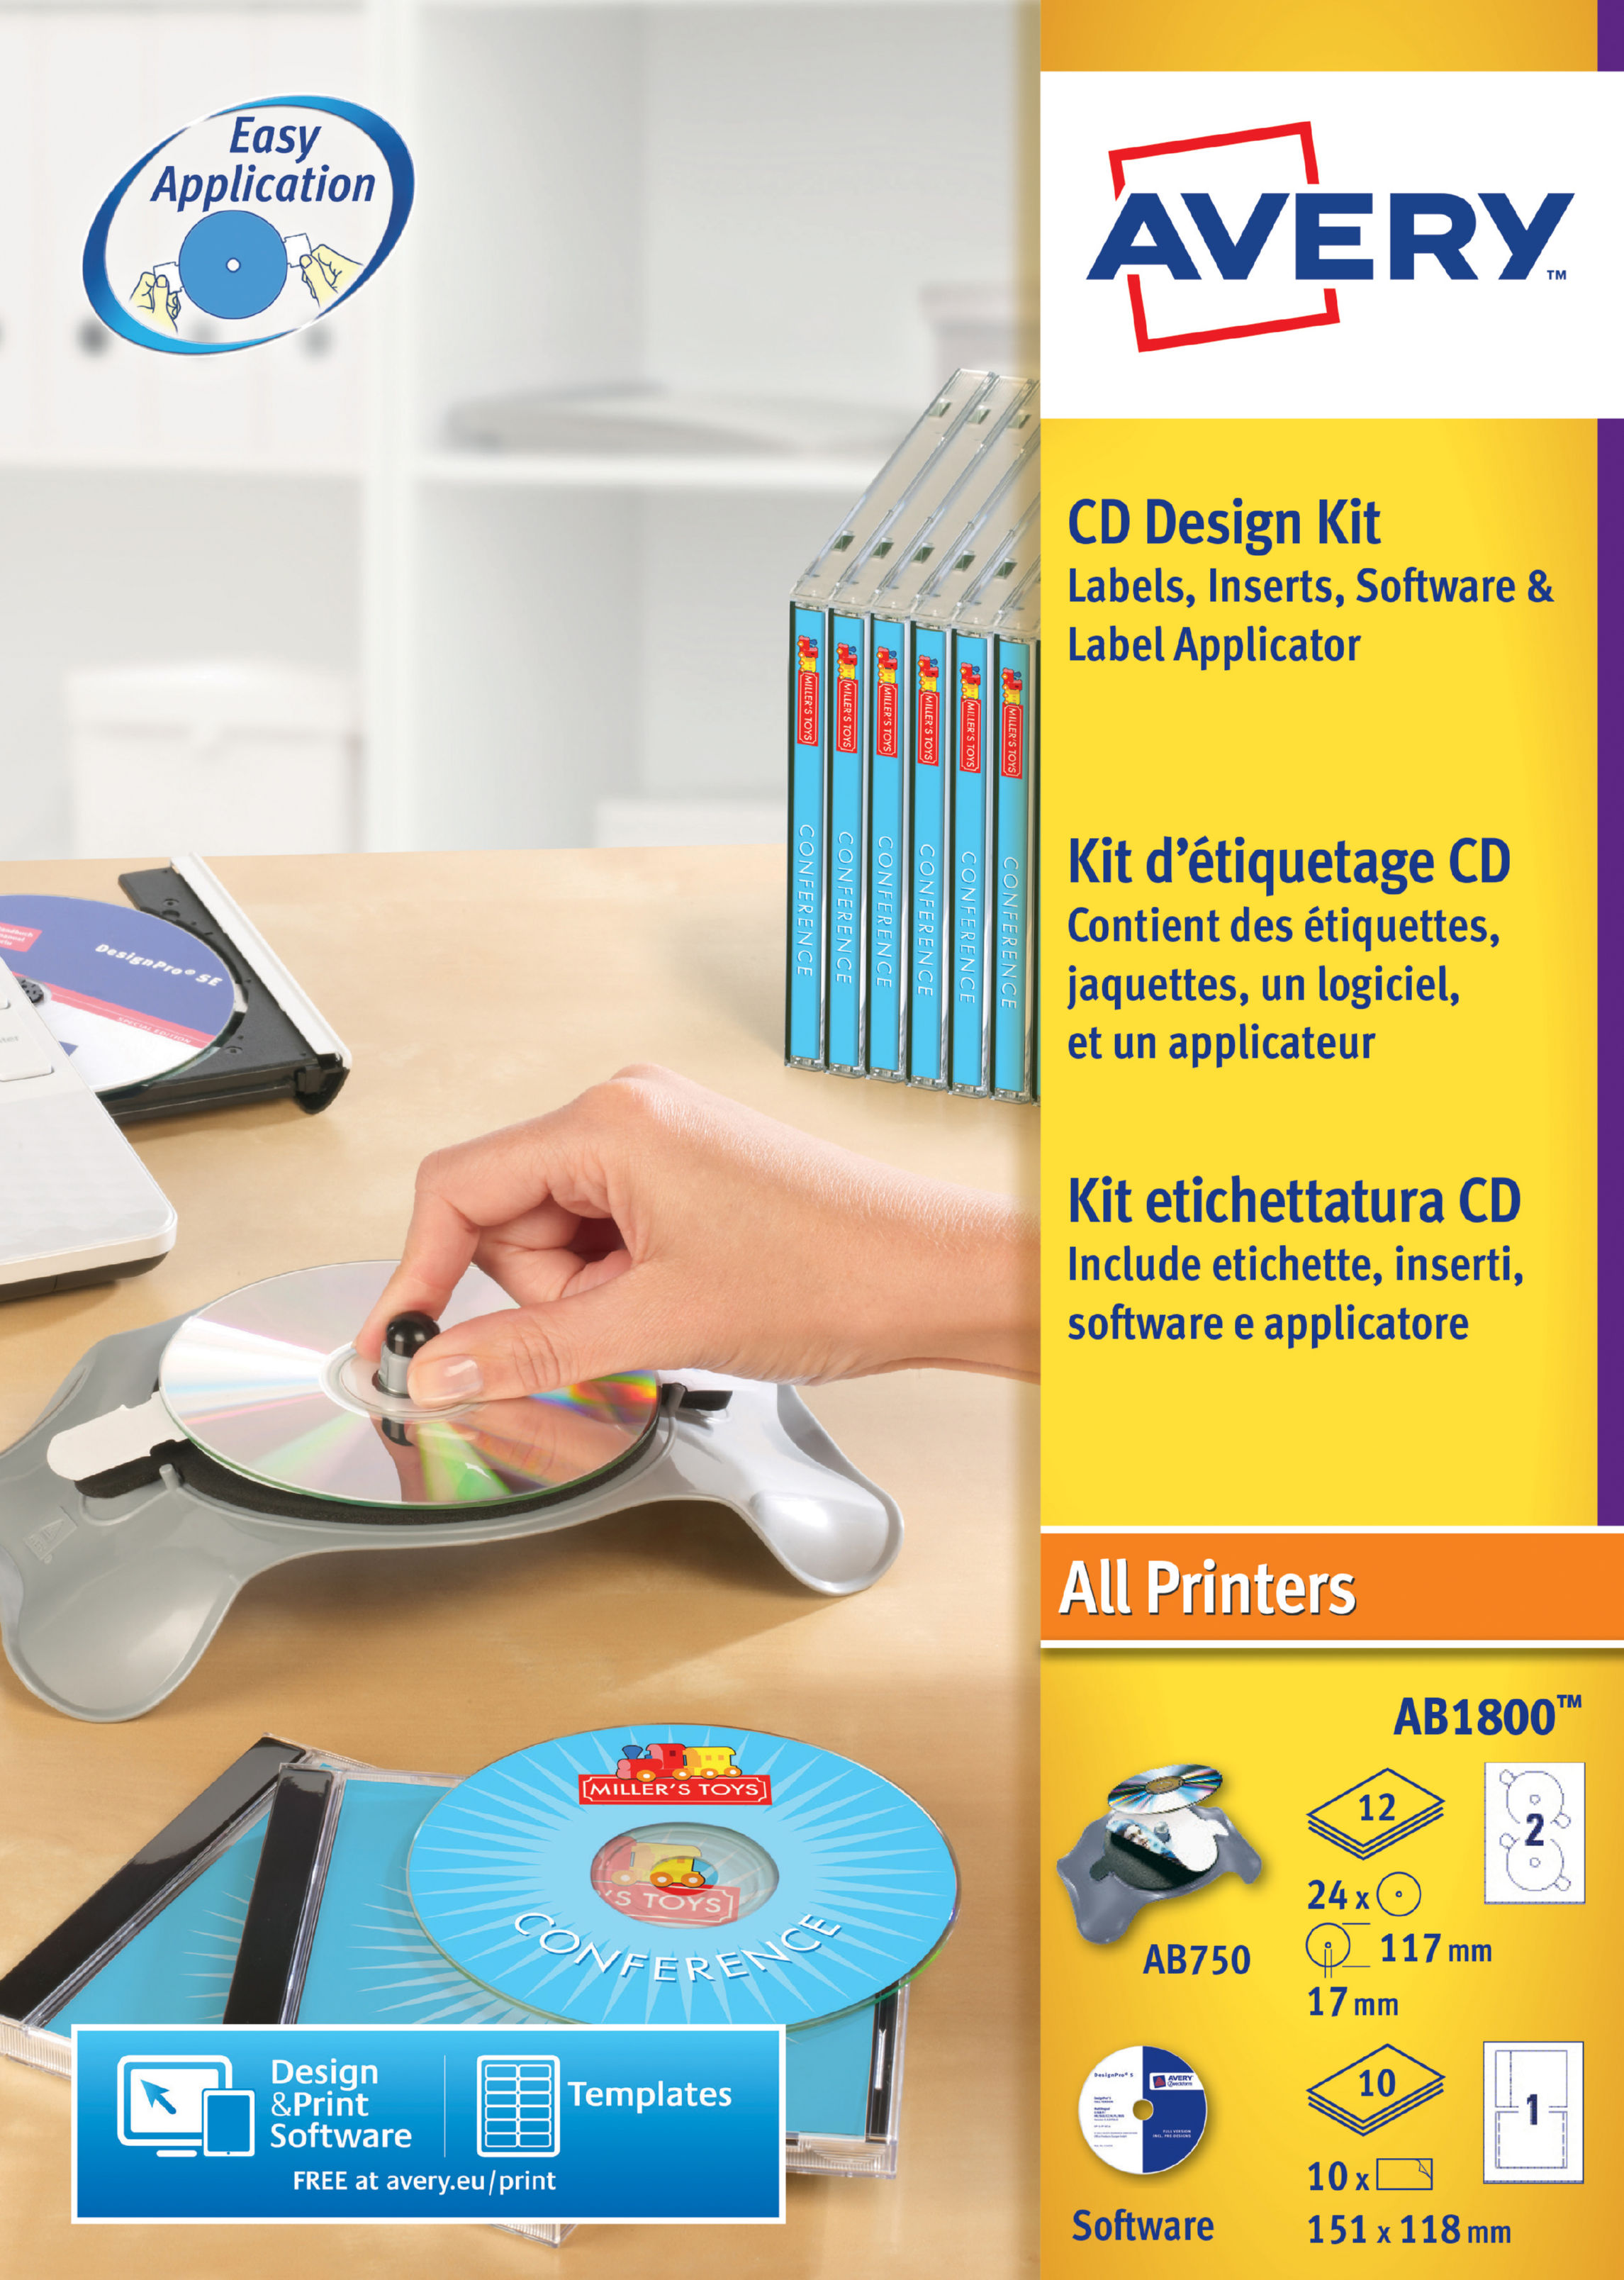 Avery CD Design Kit 117mm 10 Inserts and 24 labels